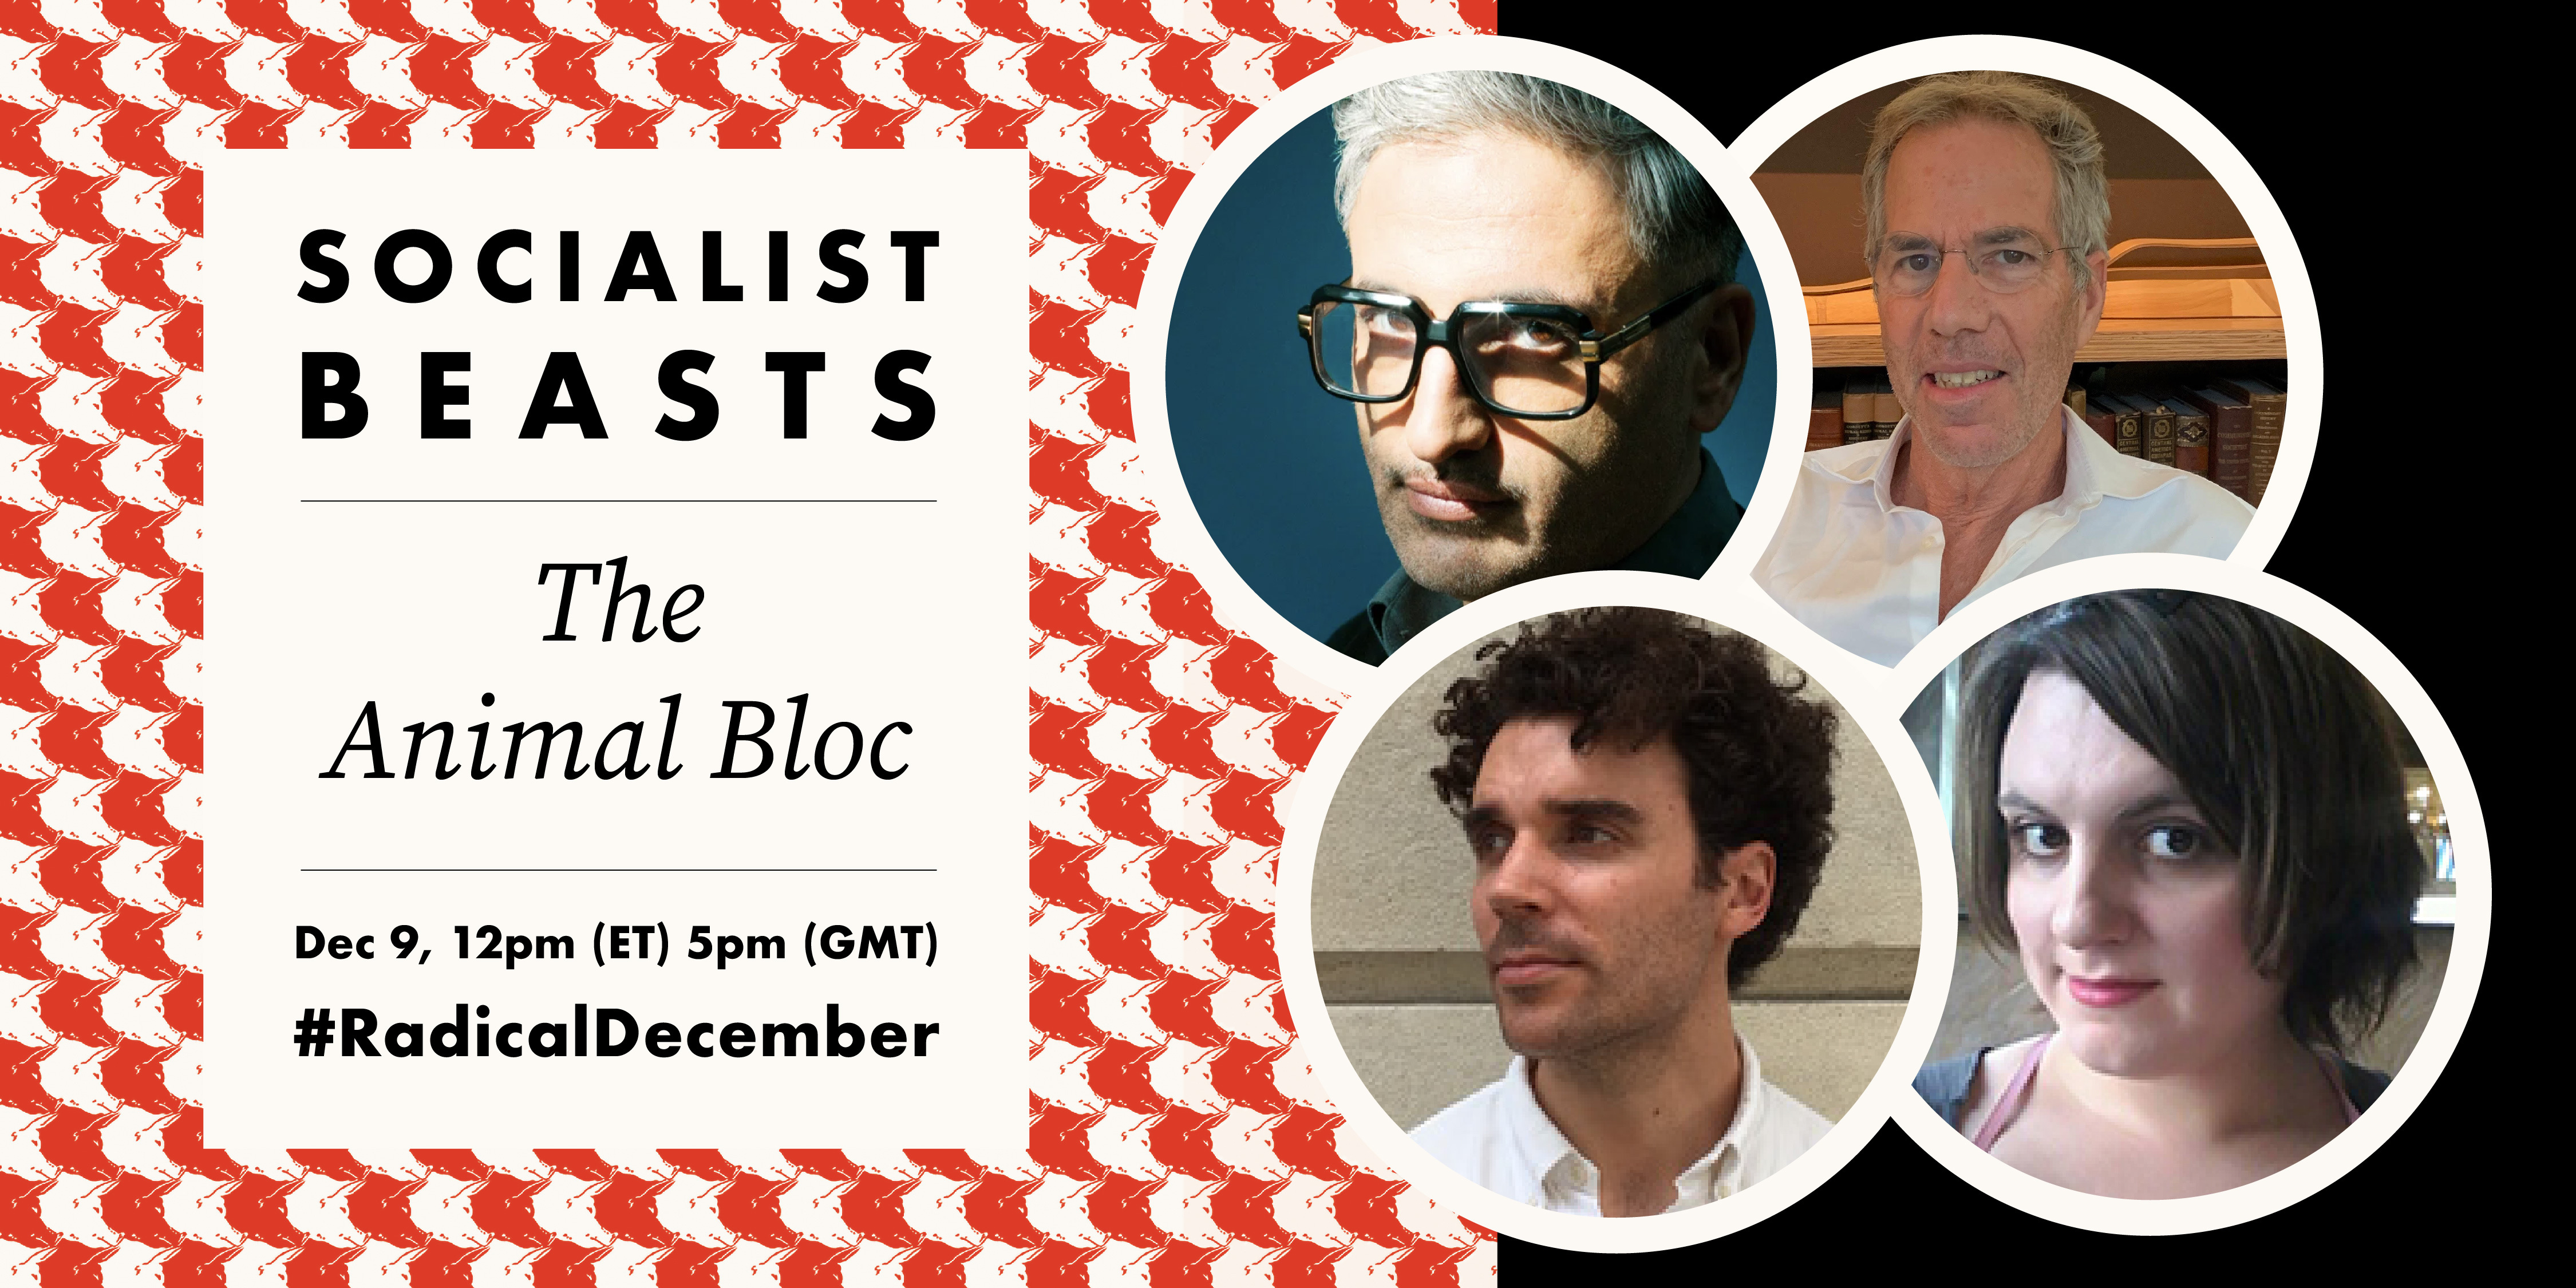 Socialist Beasts image of panelists faces